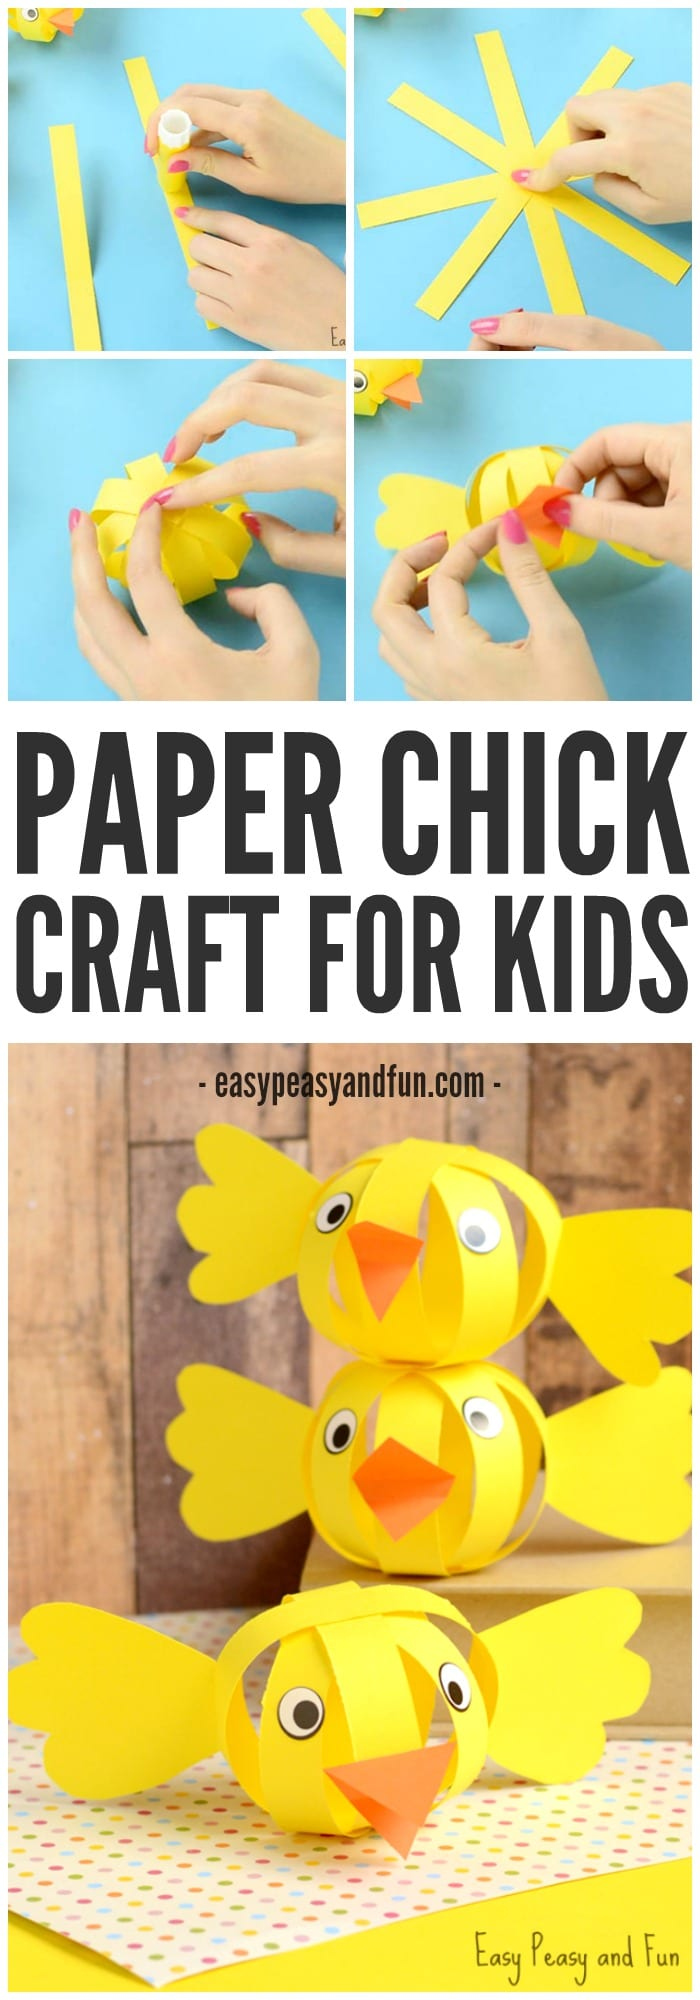 simple paper chick craft simple paper craft easter craft ideas easy peasy 5426